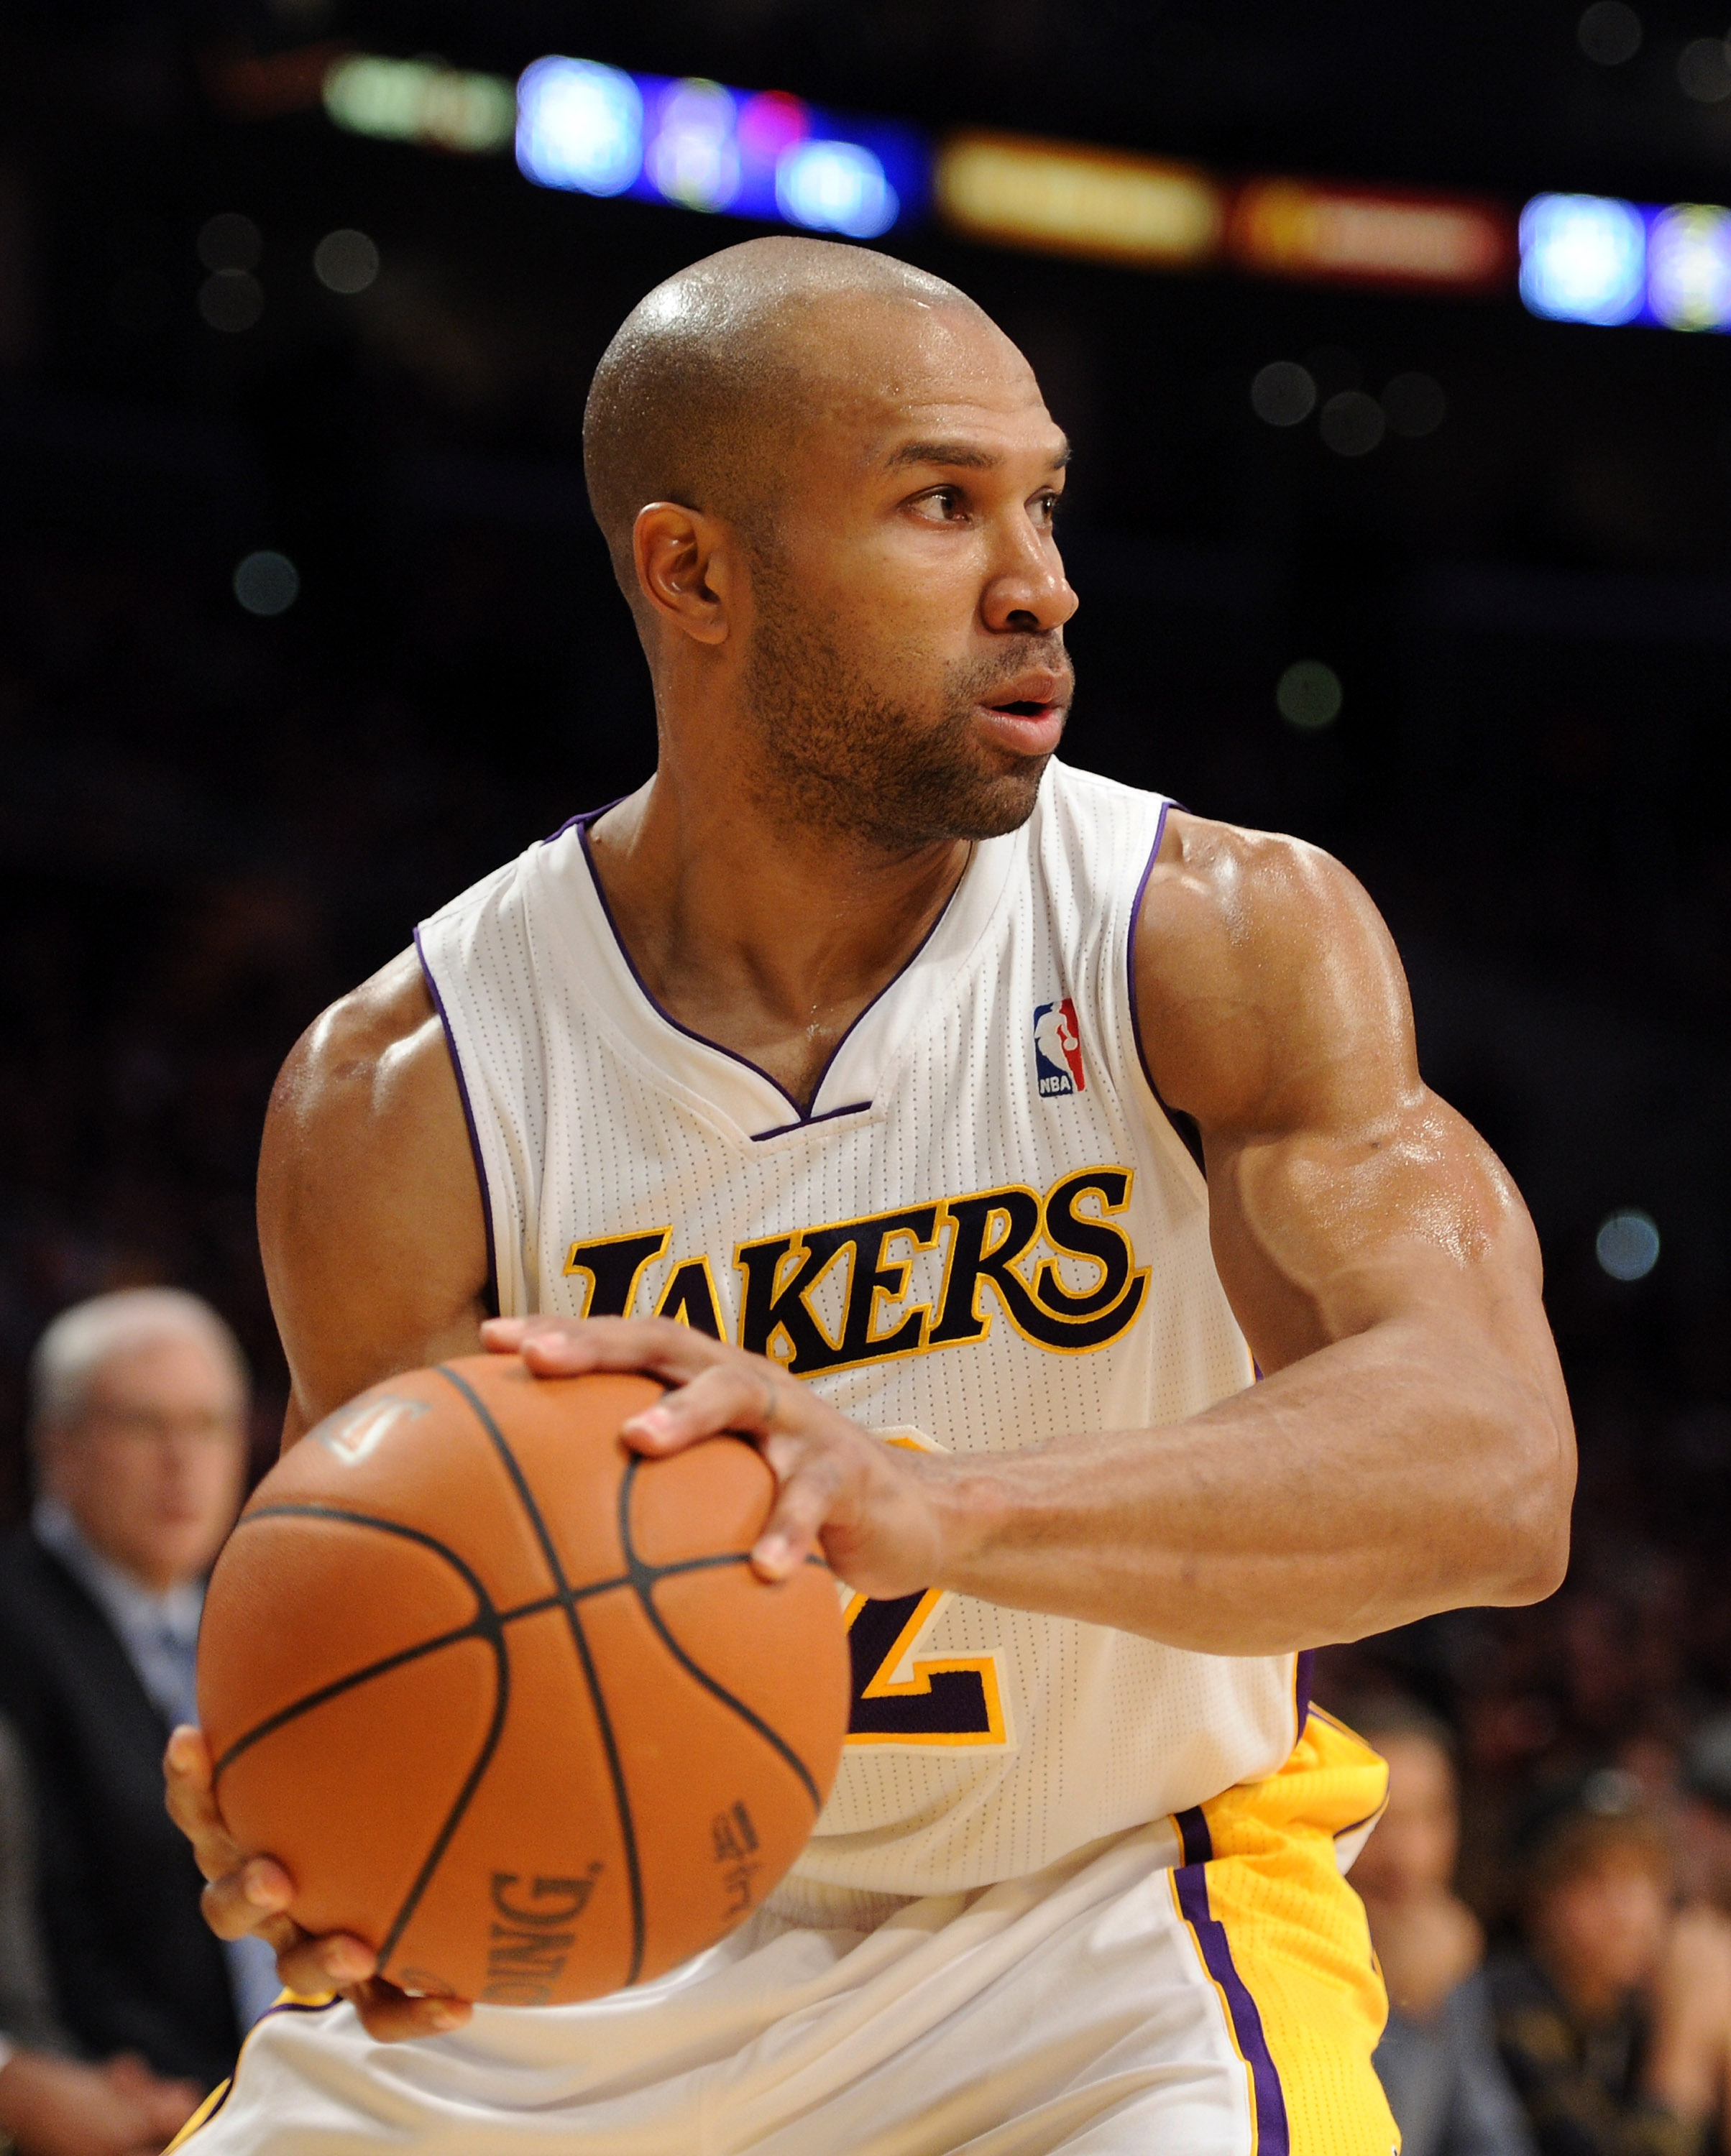 LOS ANGELES, CA - NOVEMBER 07:  Derek Fisher #2 of the Los Angeles Lakers grabs a rebound against the Portland Trail Blazers at the Staples Center on November 7, 2010 in Los Angeles, California.  NOTE TO USER: User expressly acknowledges and agrees that,